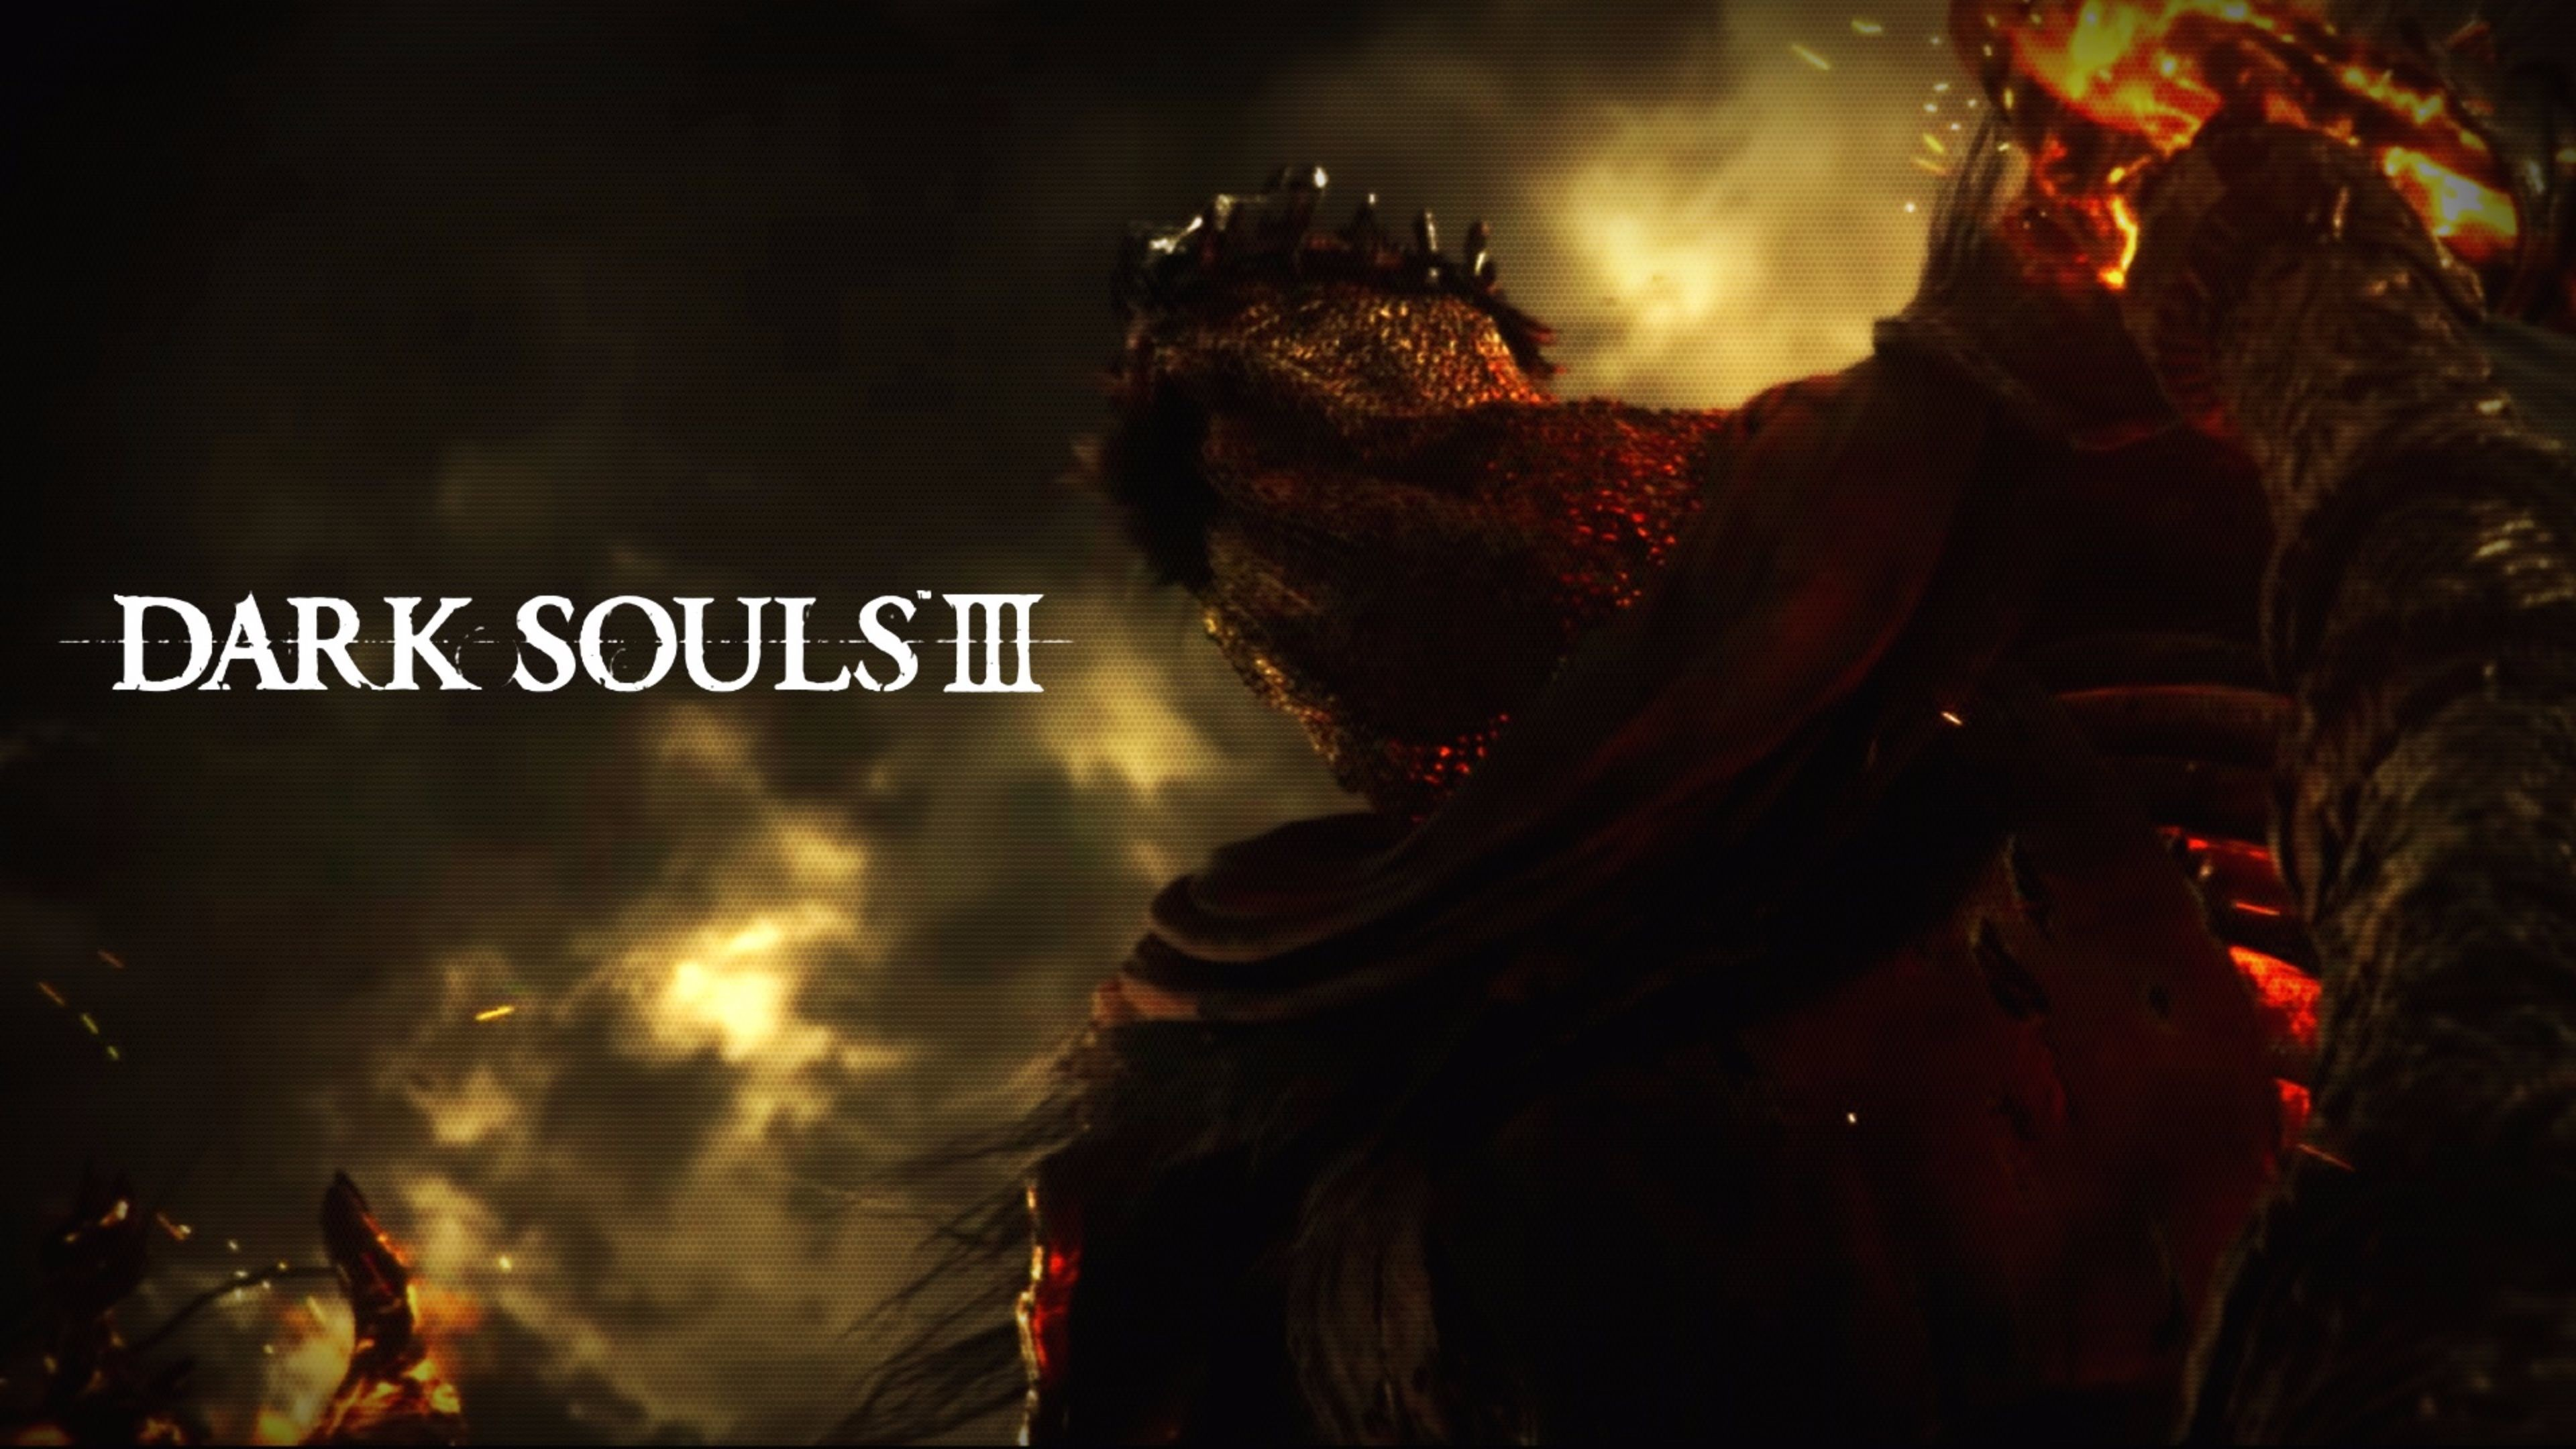 3840x2160 Dark Souls 3 Wallpapers, Pictures, Images